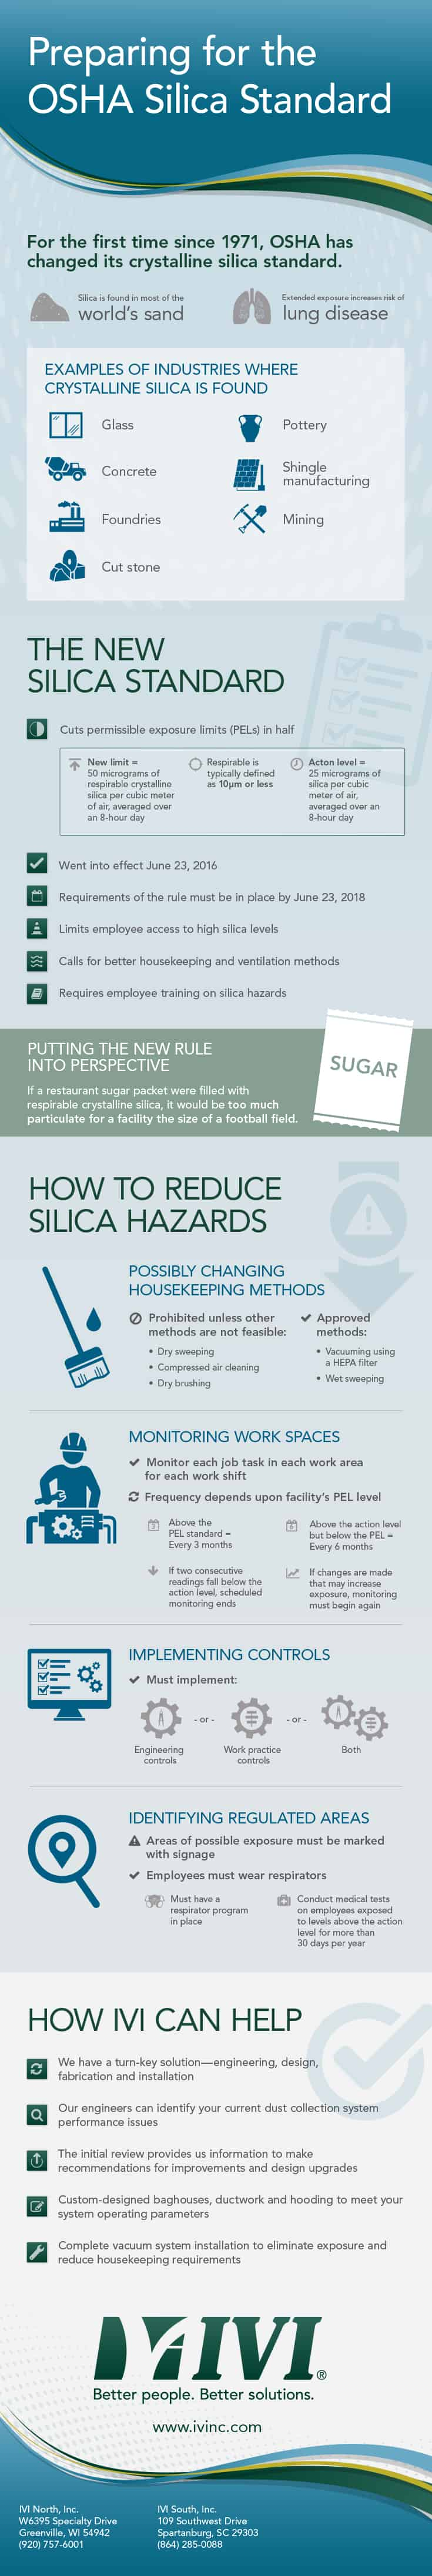 Preparing for the OSHA silica standard infographic